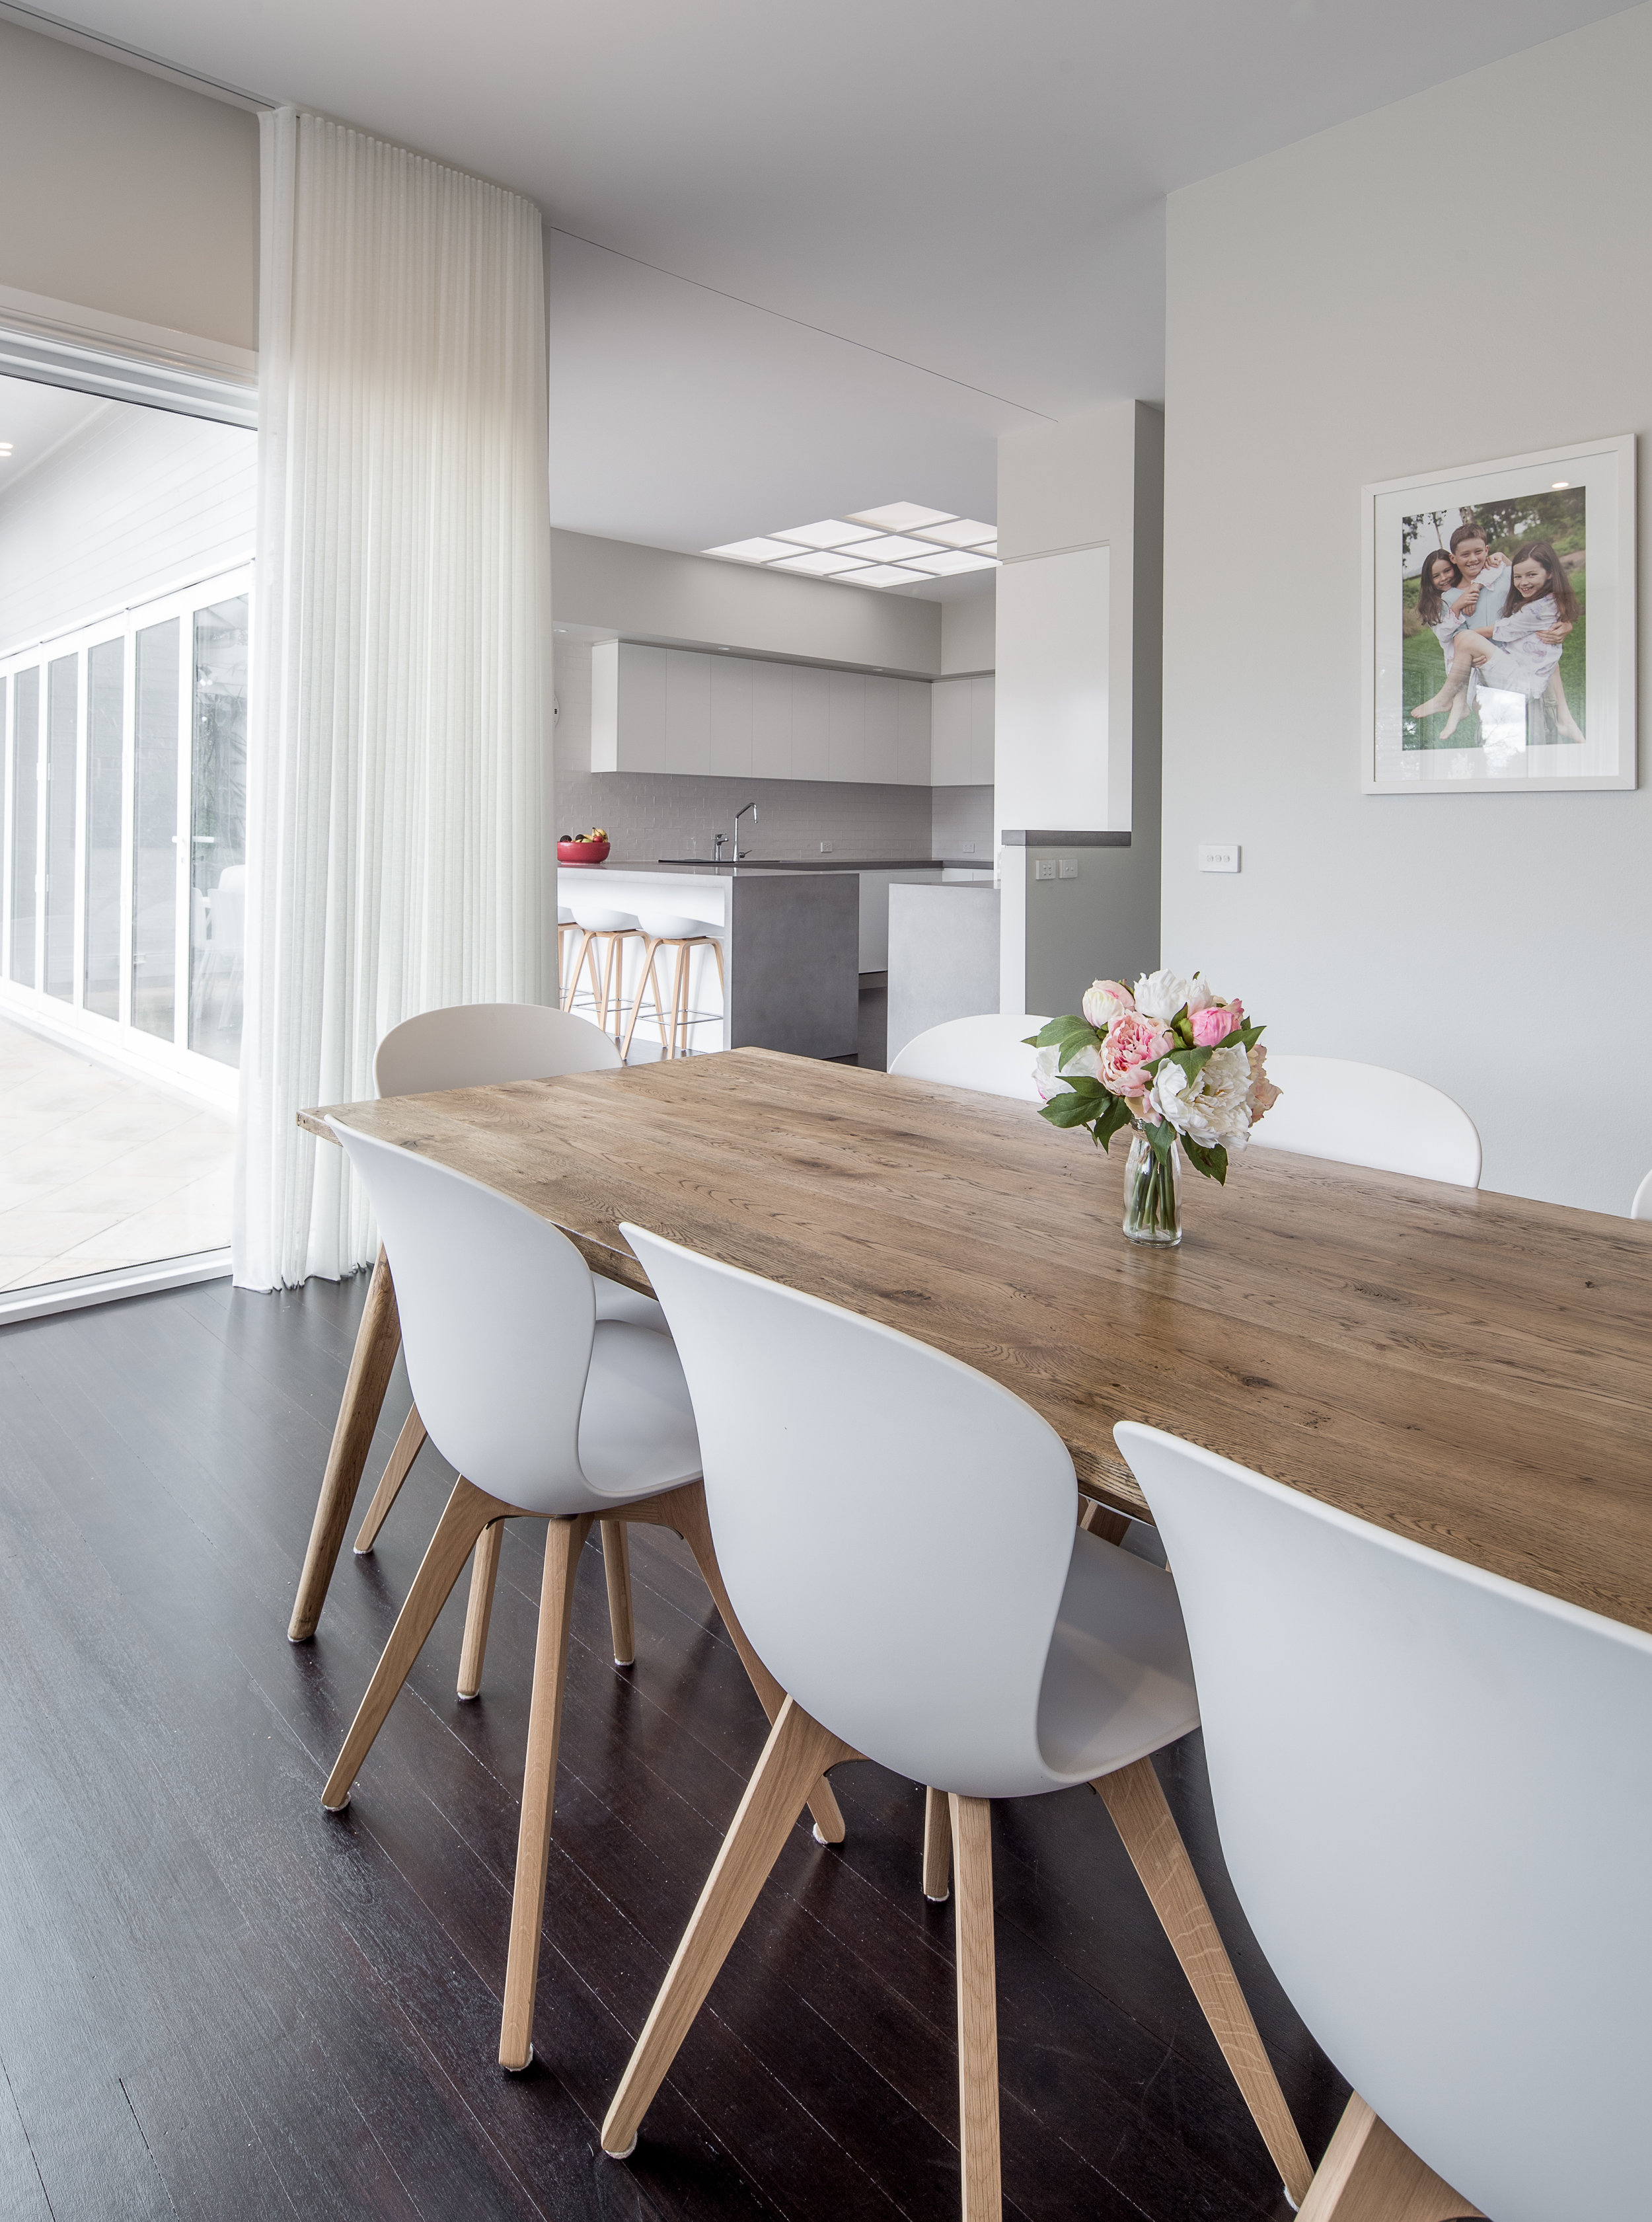 Family dining area in modern upper market home with timber dining table and matching chairs in white